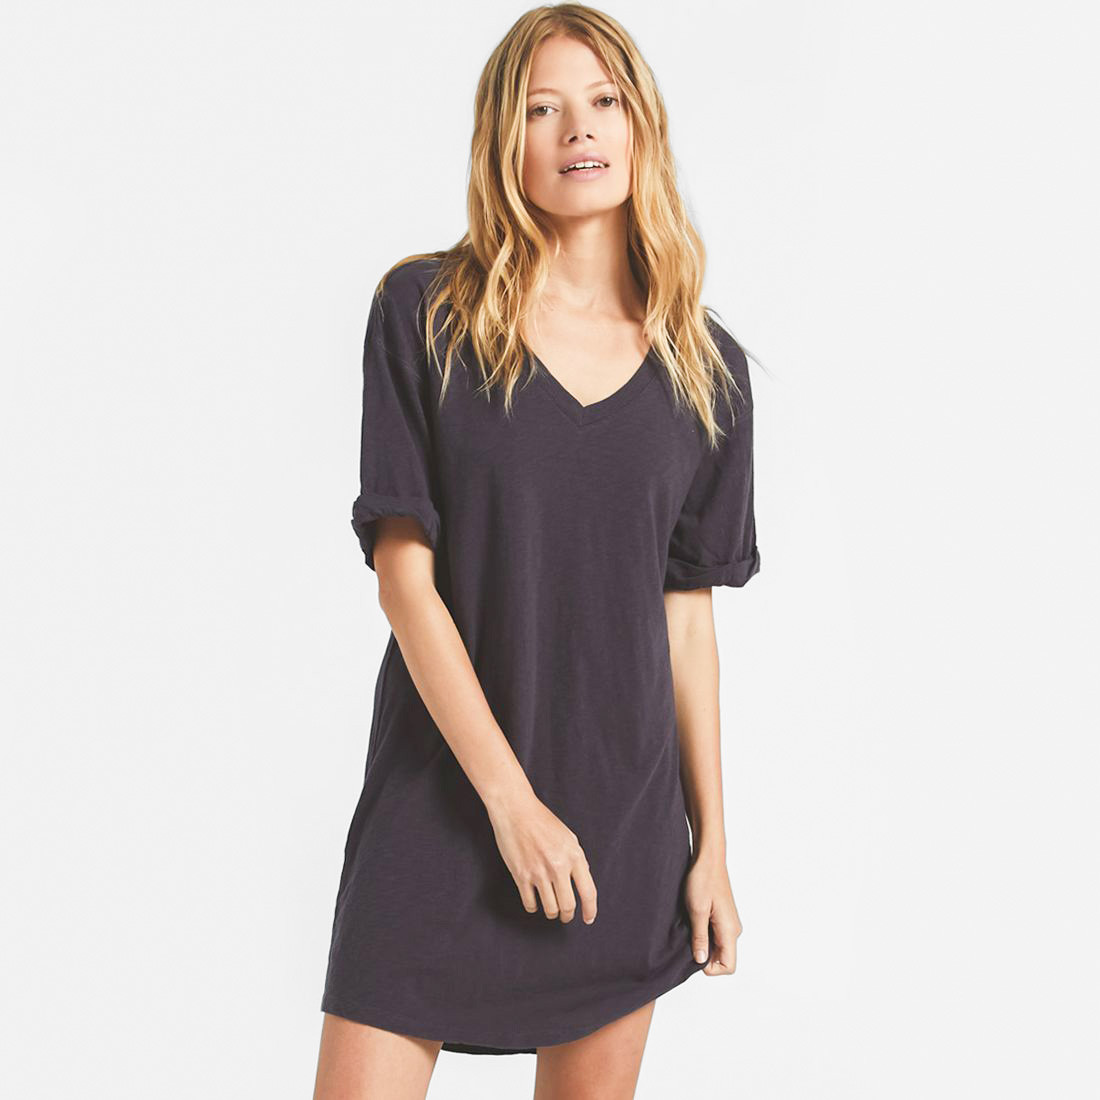 Woman in a black v-neck t-shirt dress by Z-supply - Casual summer dress subscription